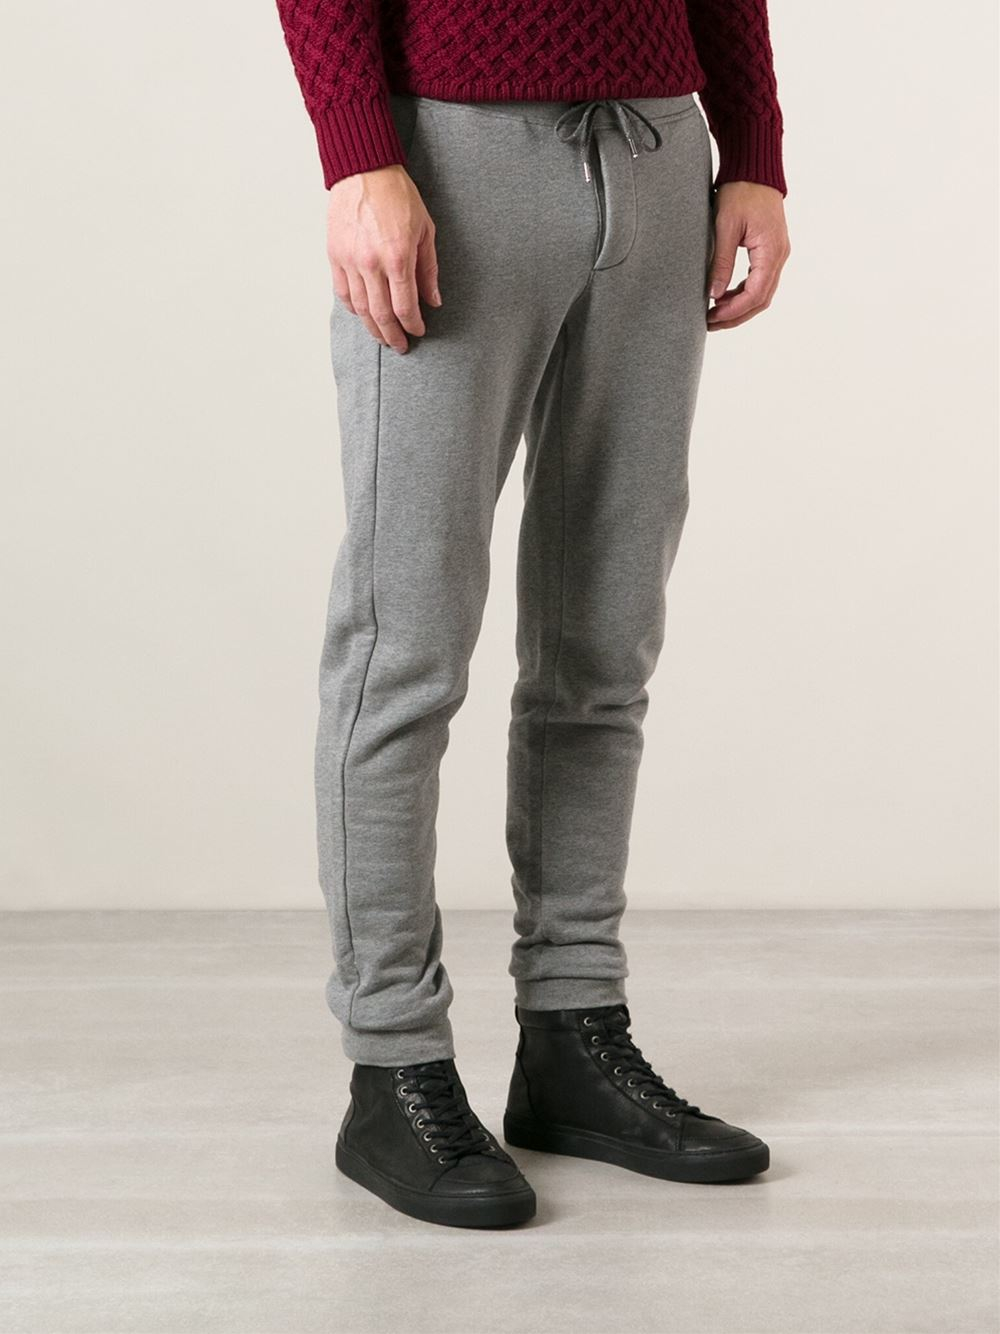 Trending: Men's Joggers & Tapered Pants Men's joggers are an athletic essential. These ultra-comfortable, tapered-bottom pants go where your day takes you, from the weight room to the track and anywhere in between.